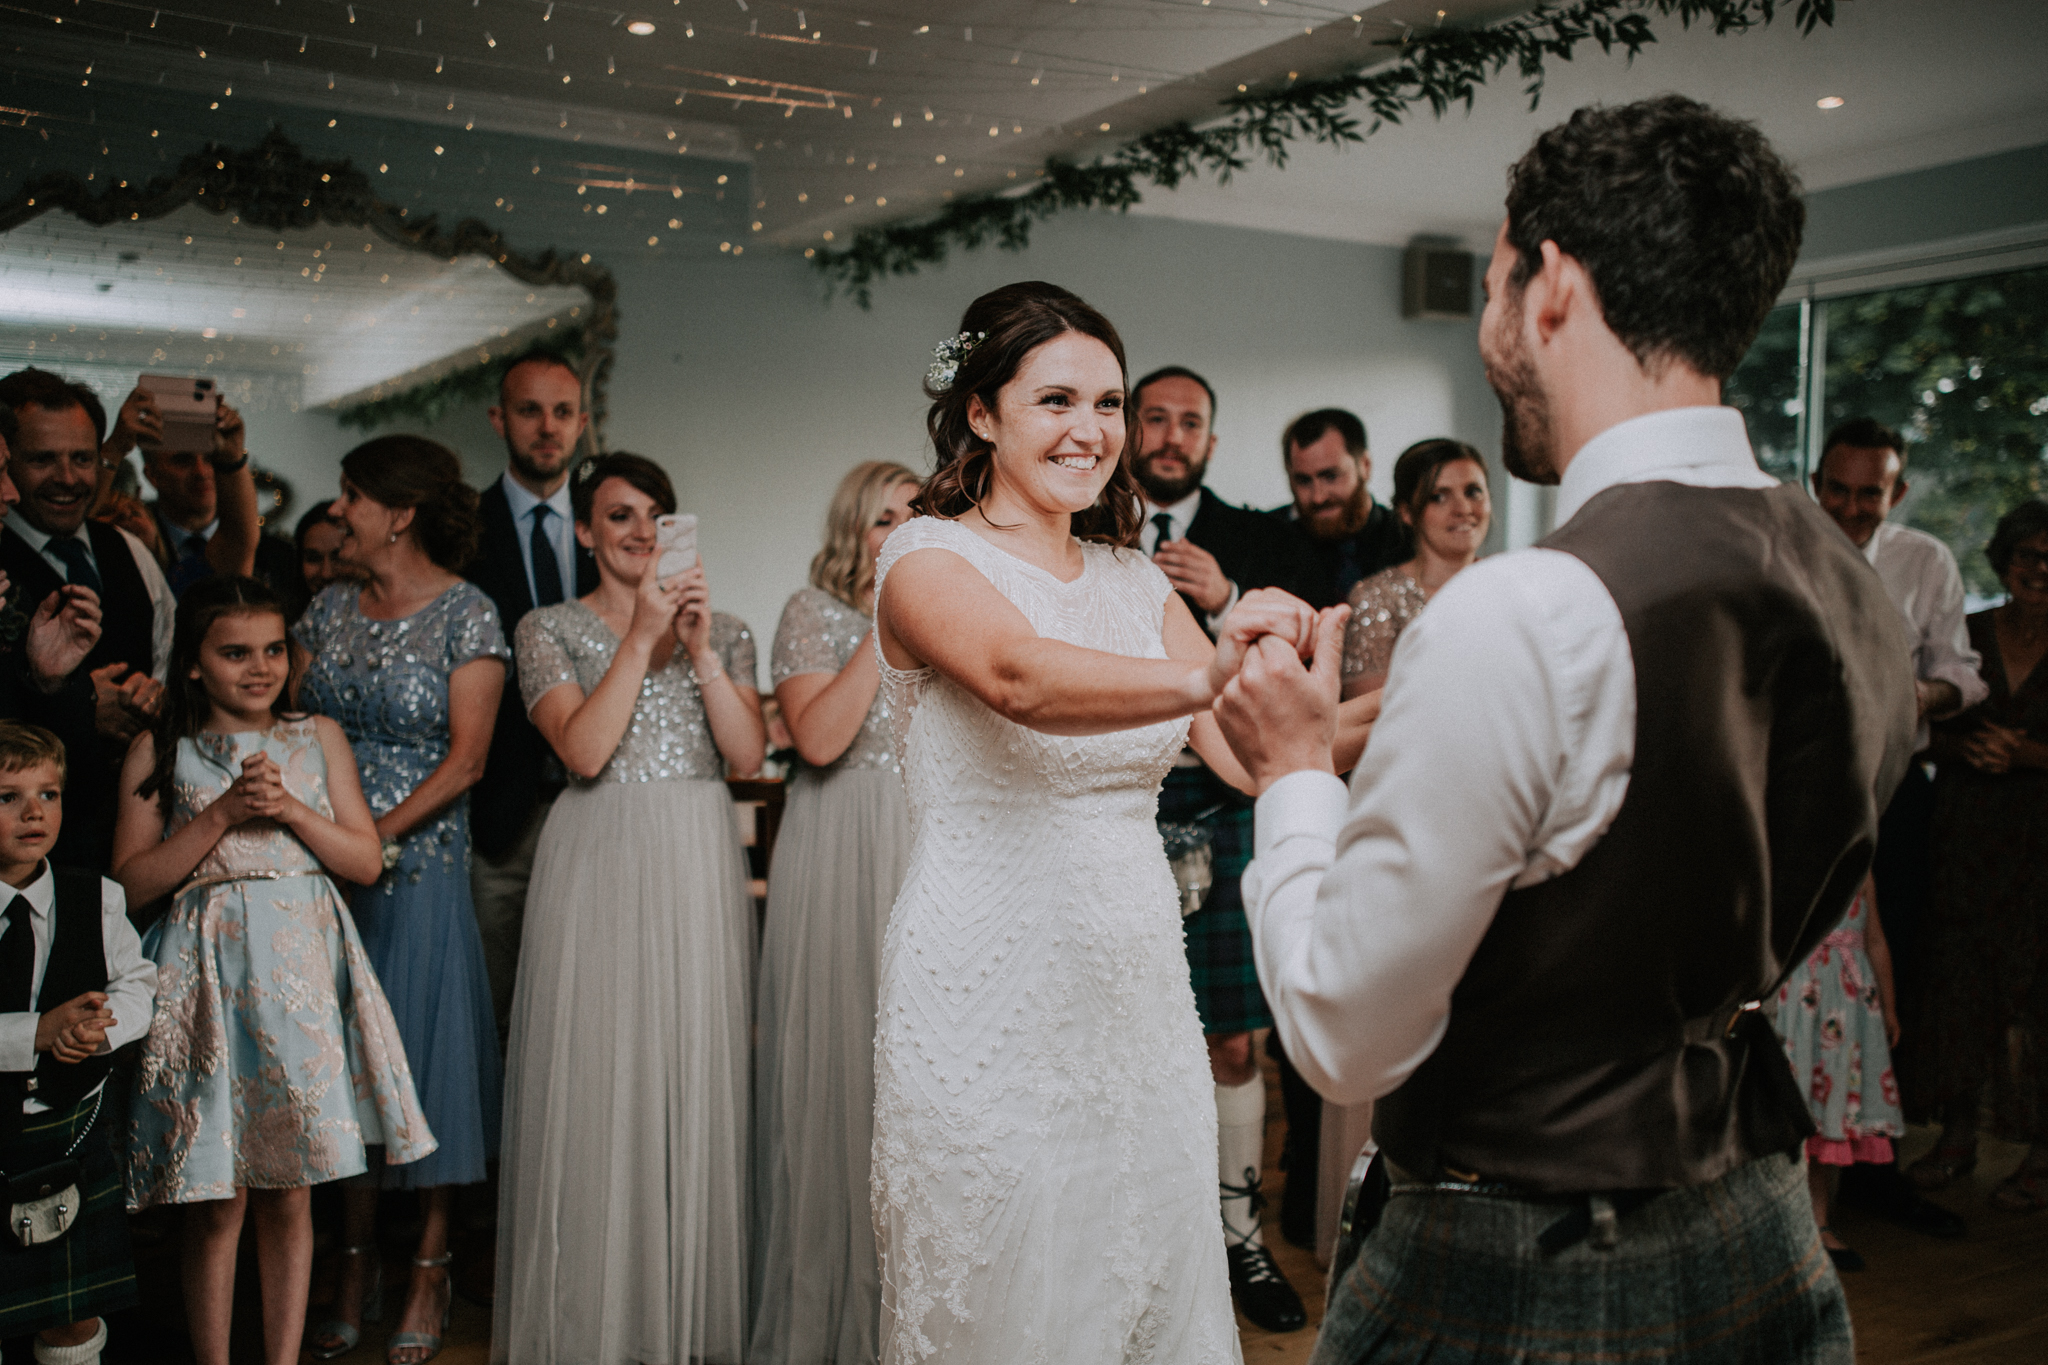 The first dance as a husband and wife at Altskeith House